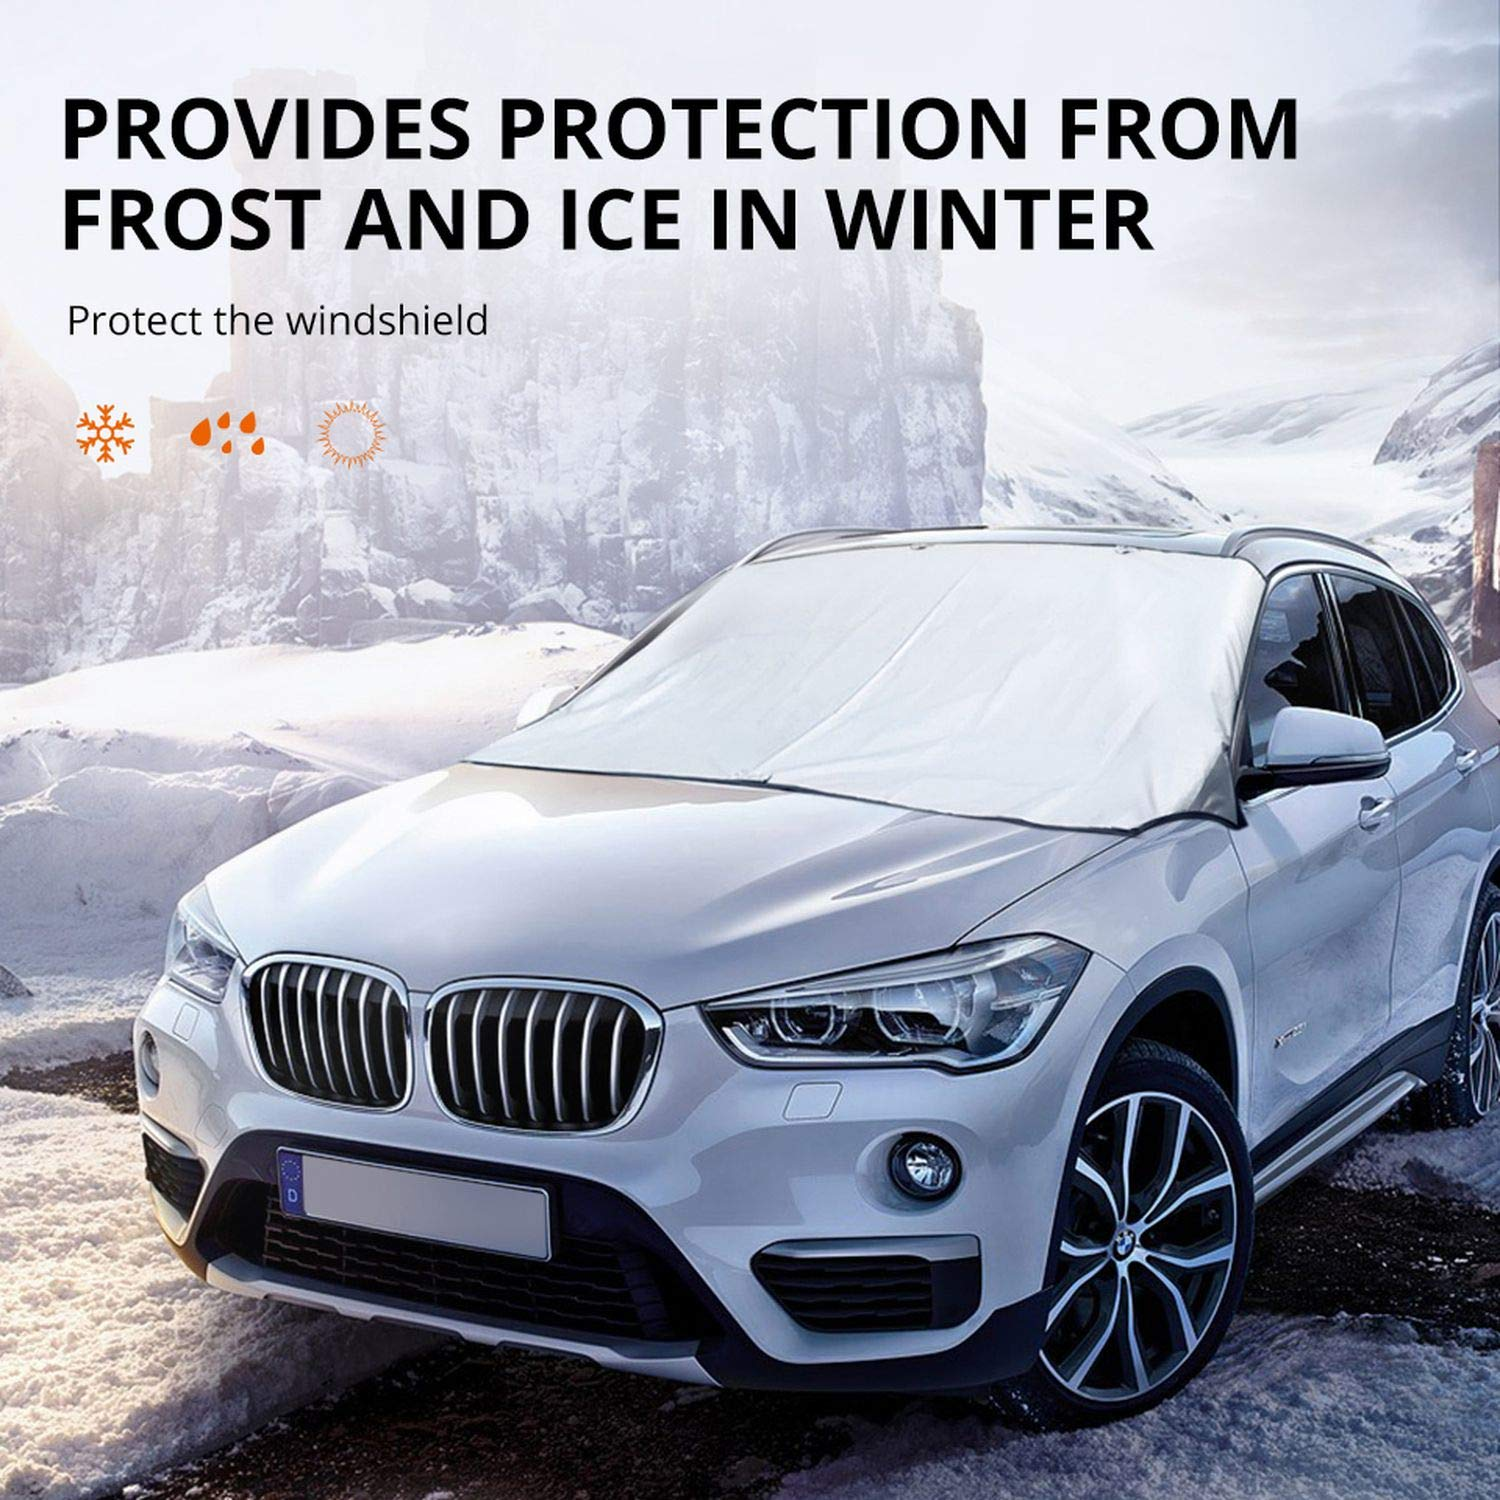 Patrol Winter Universal Protective Auto Anti Snow Ice Shield Car Covers Sun Shade Cover Windshield Car Front Window Screen Cover,190 X 120 cm